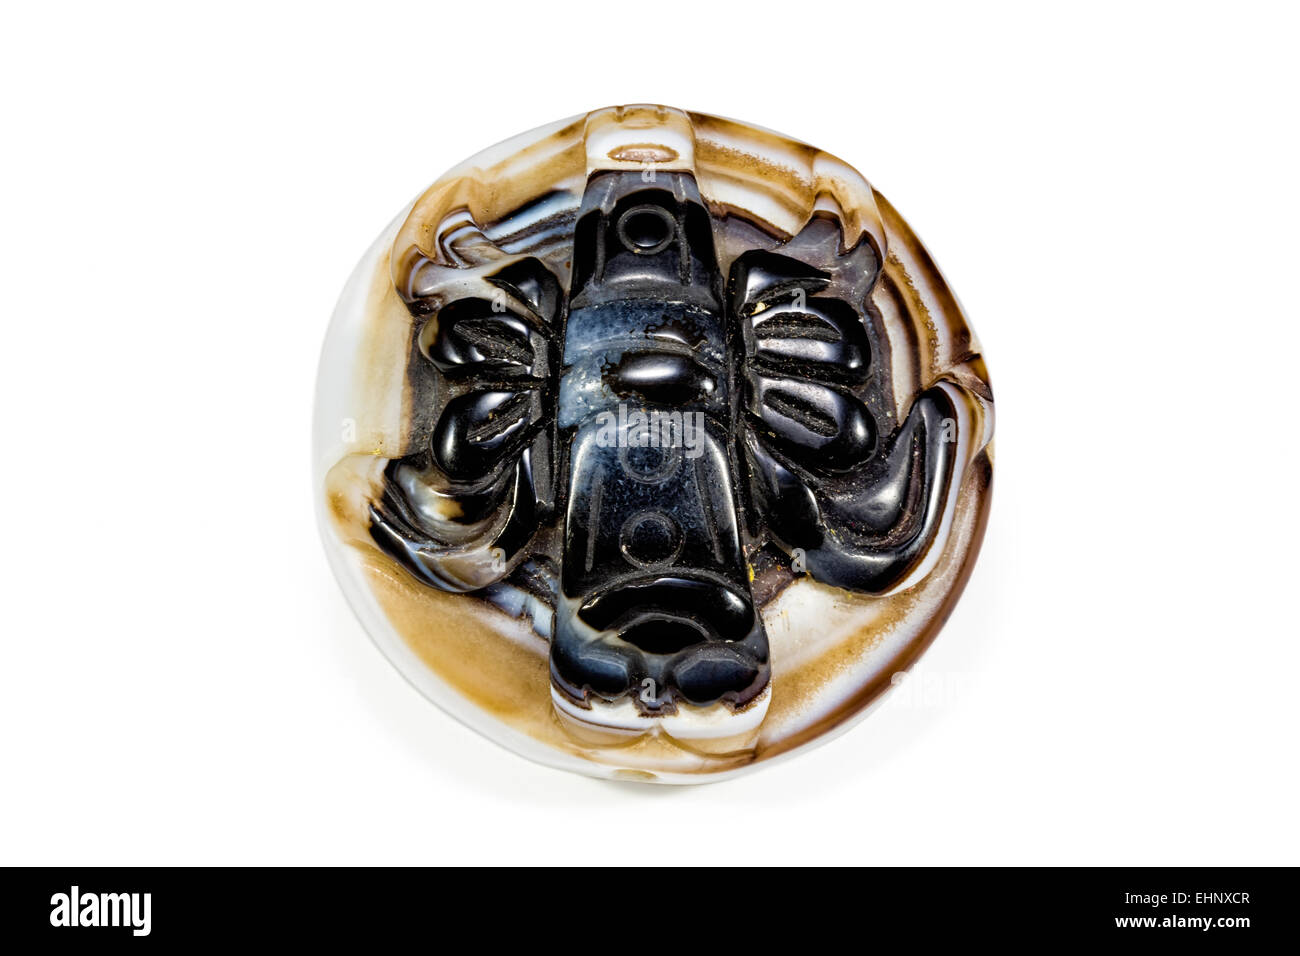 Banded Agate (Chalcedony- the compact micro-crystalline variety of quartz) stylised oriental carving obverse Crystal - Stock Image